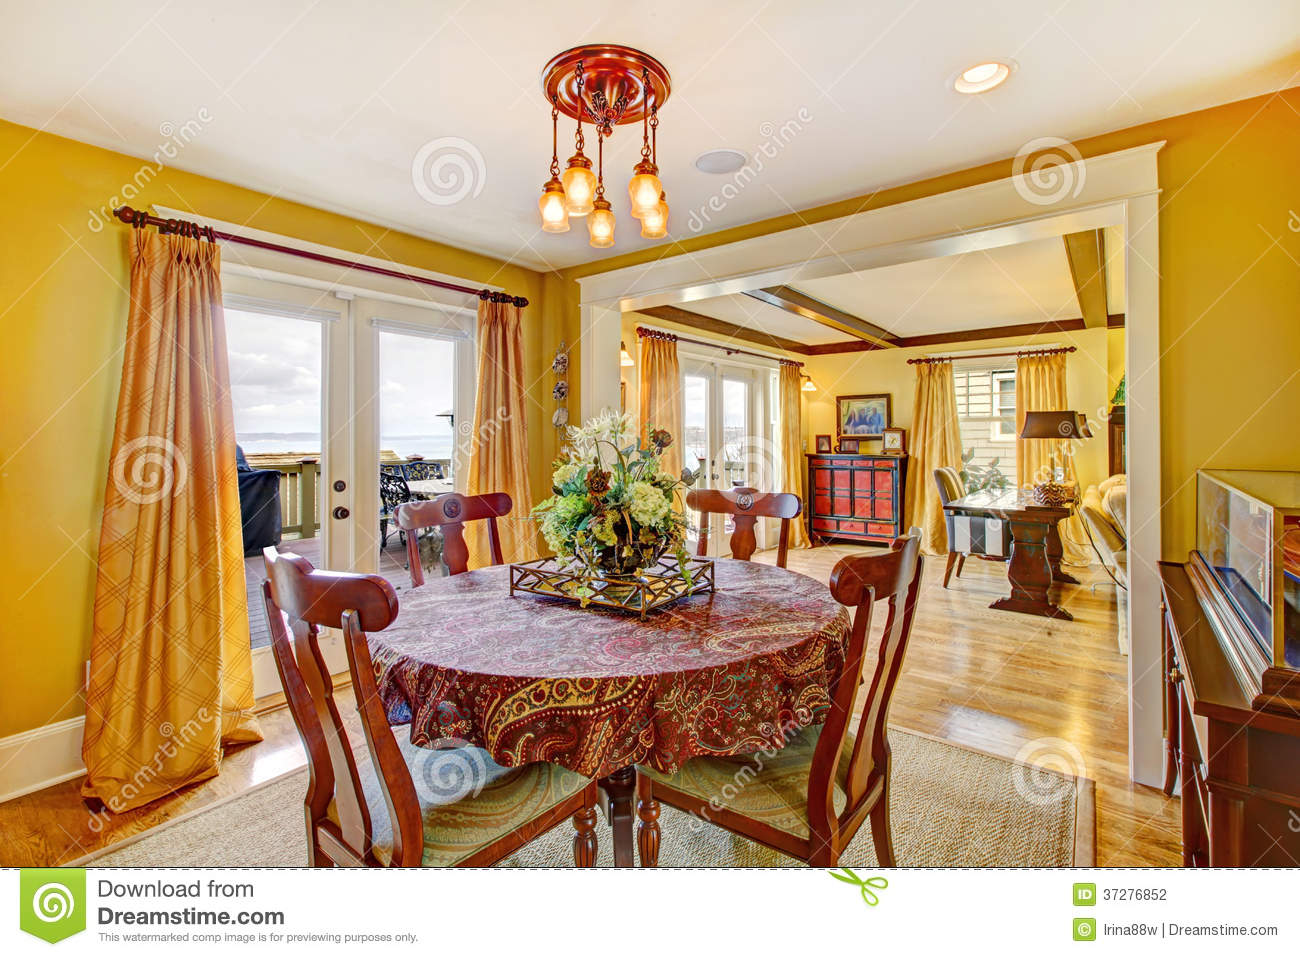 Yellow Dining Room Walls Cozy Yellow Dining Room Stock Photo Image Of Image Decor